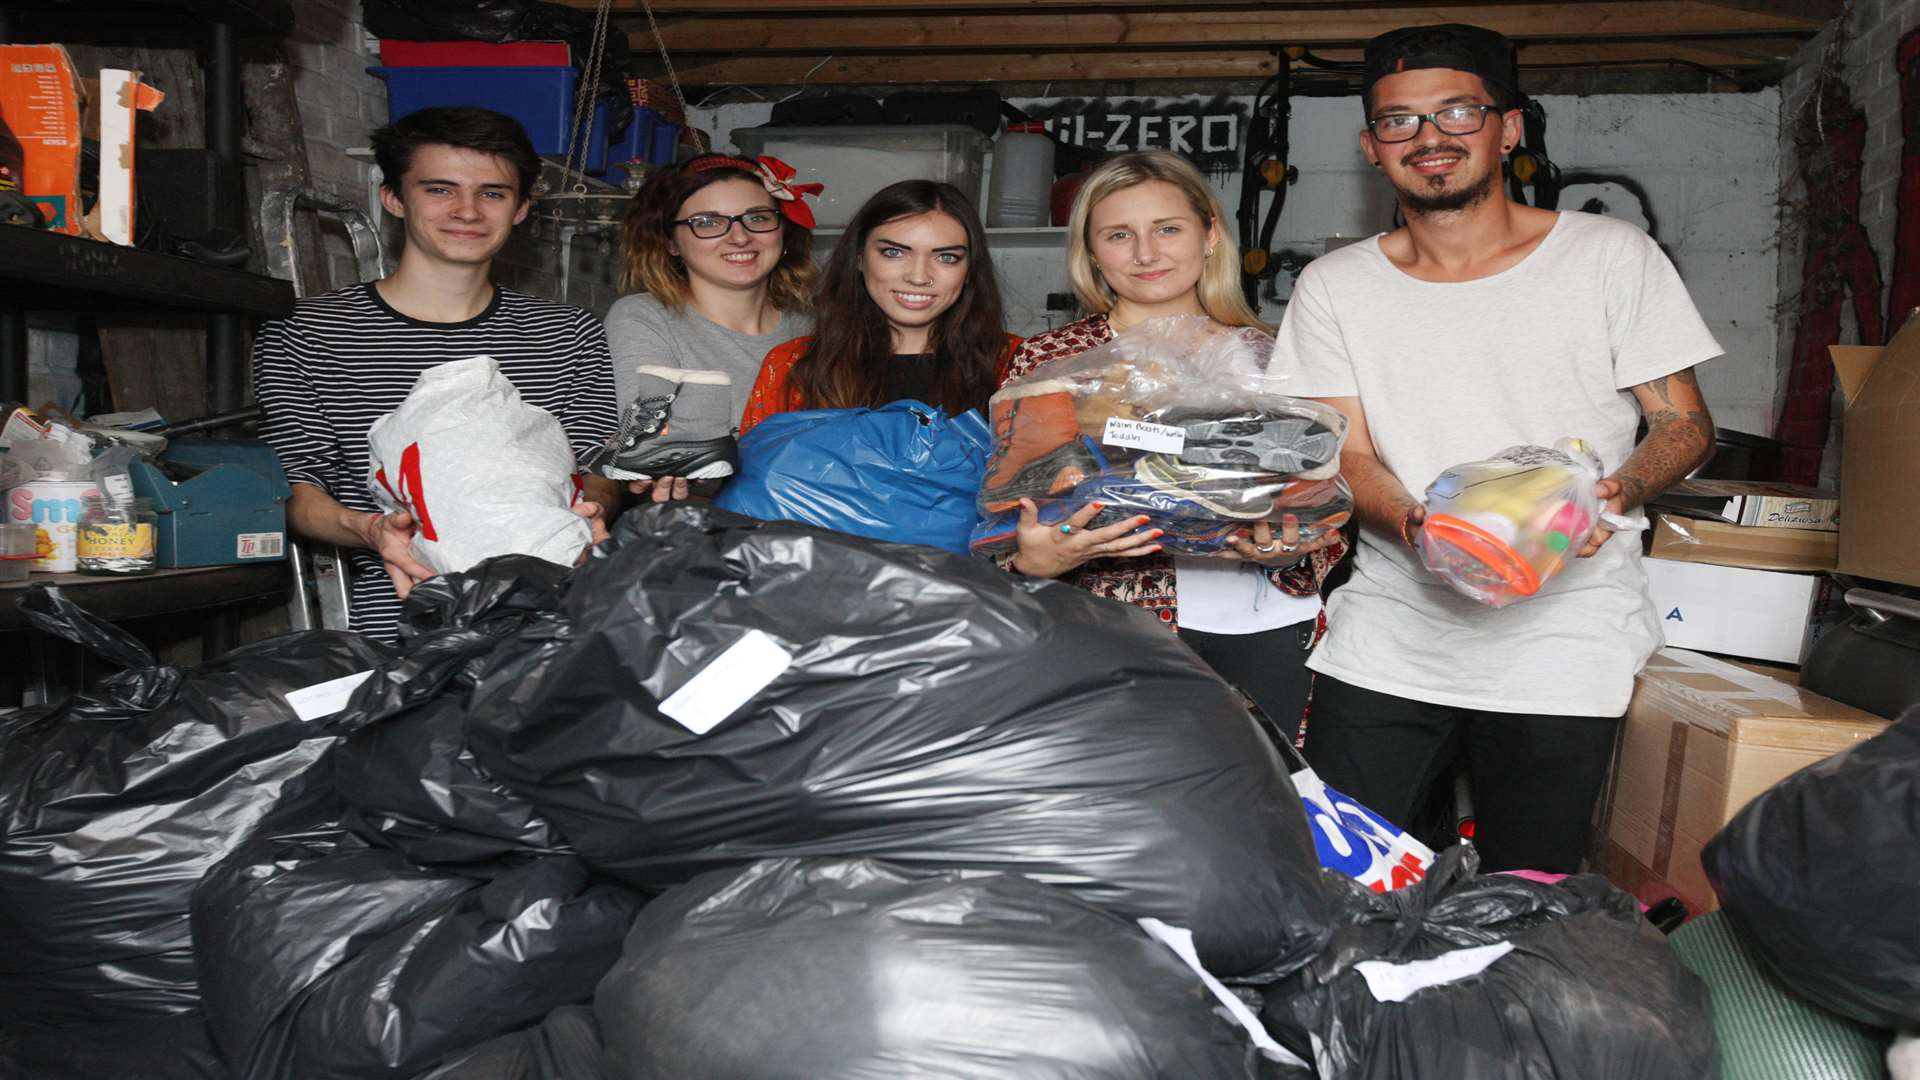 The group with some of the donated clothing. Picture: John Westhrop